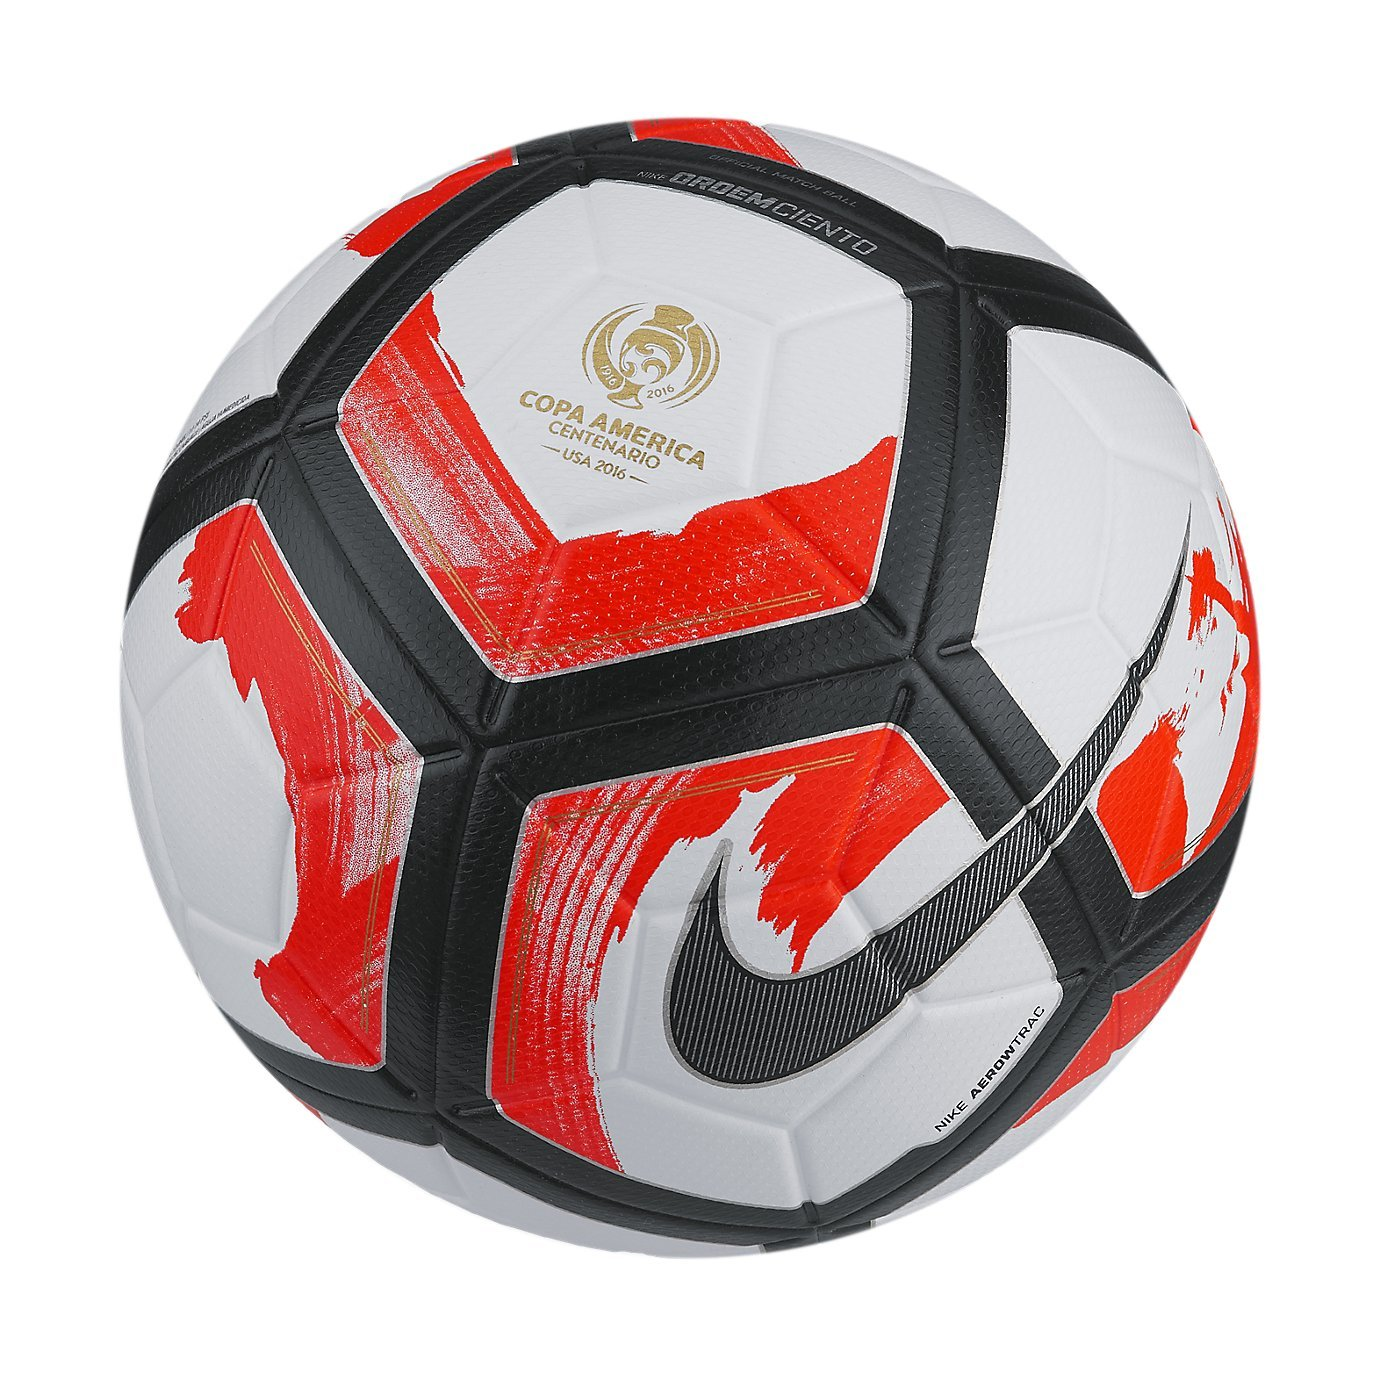 Nike Ordem ciento Bola, White/Total Crimson/Black: Amazon.es ...